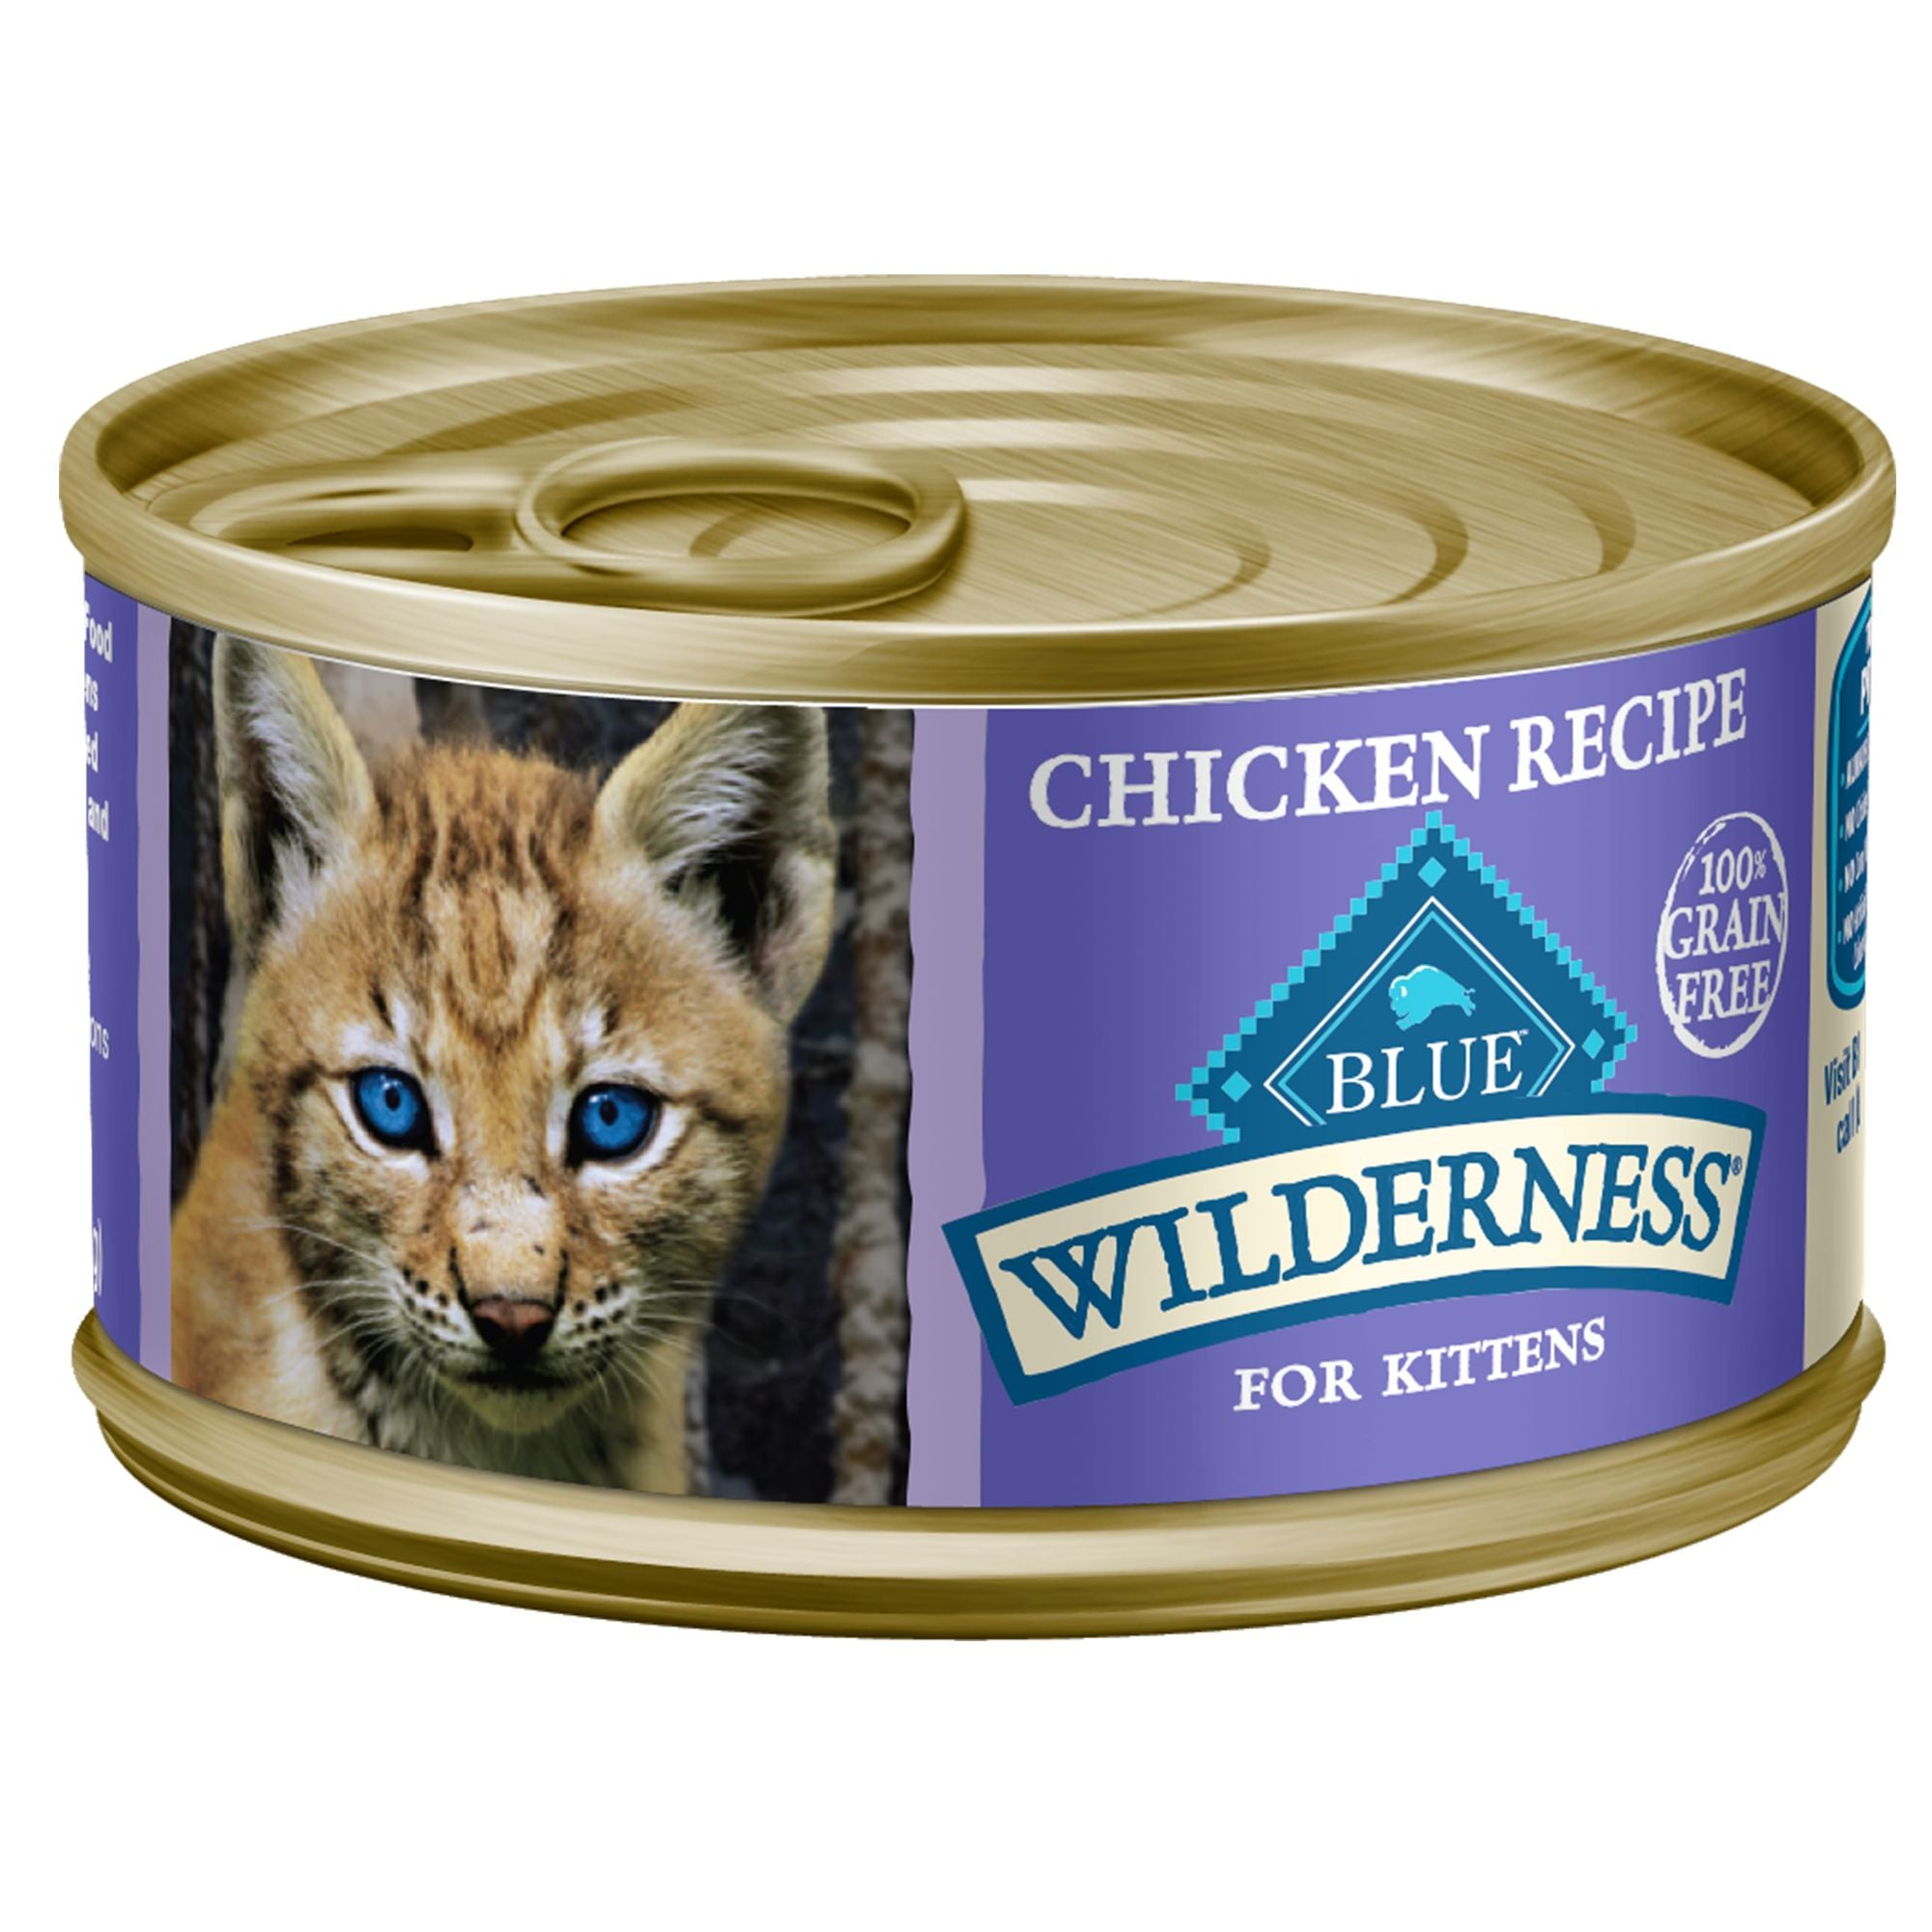 Blue Wilderness Cat Food (Wet) - Kitten